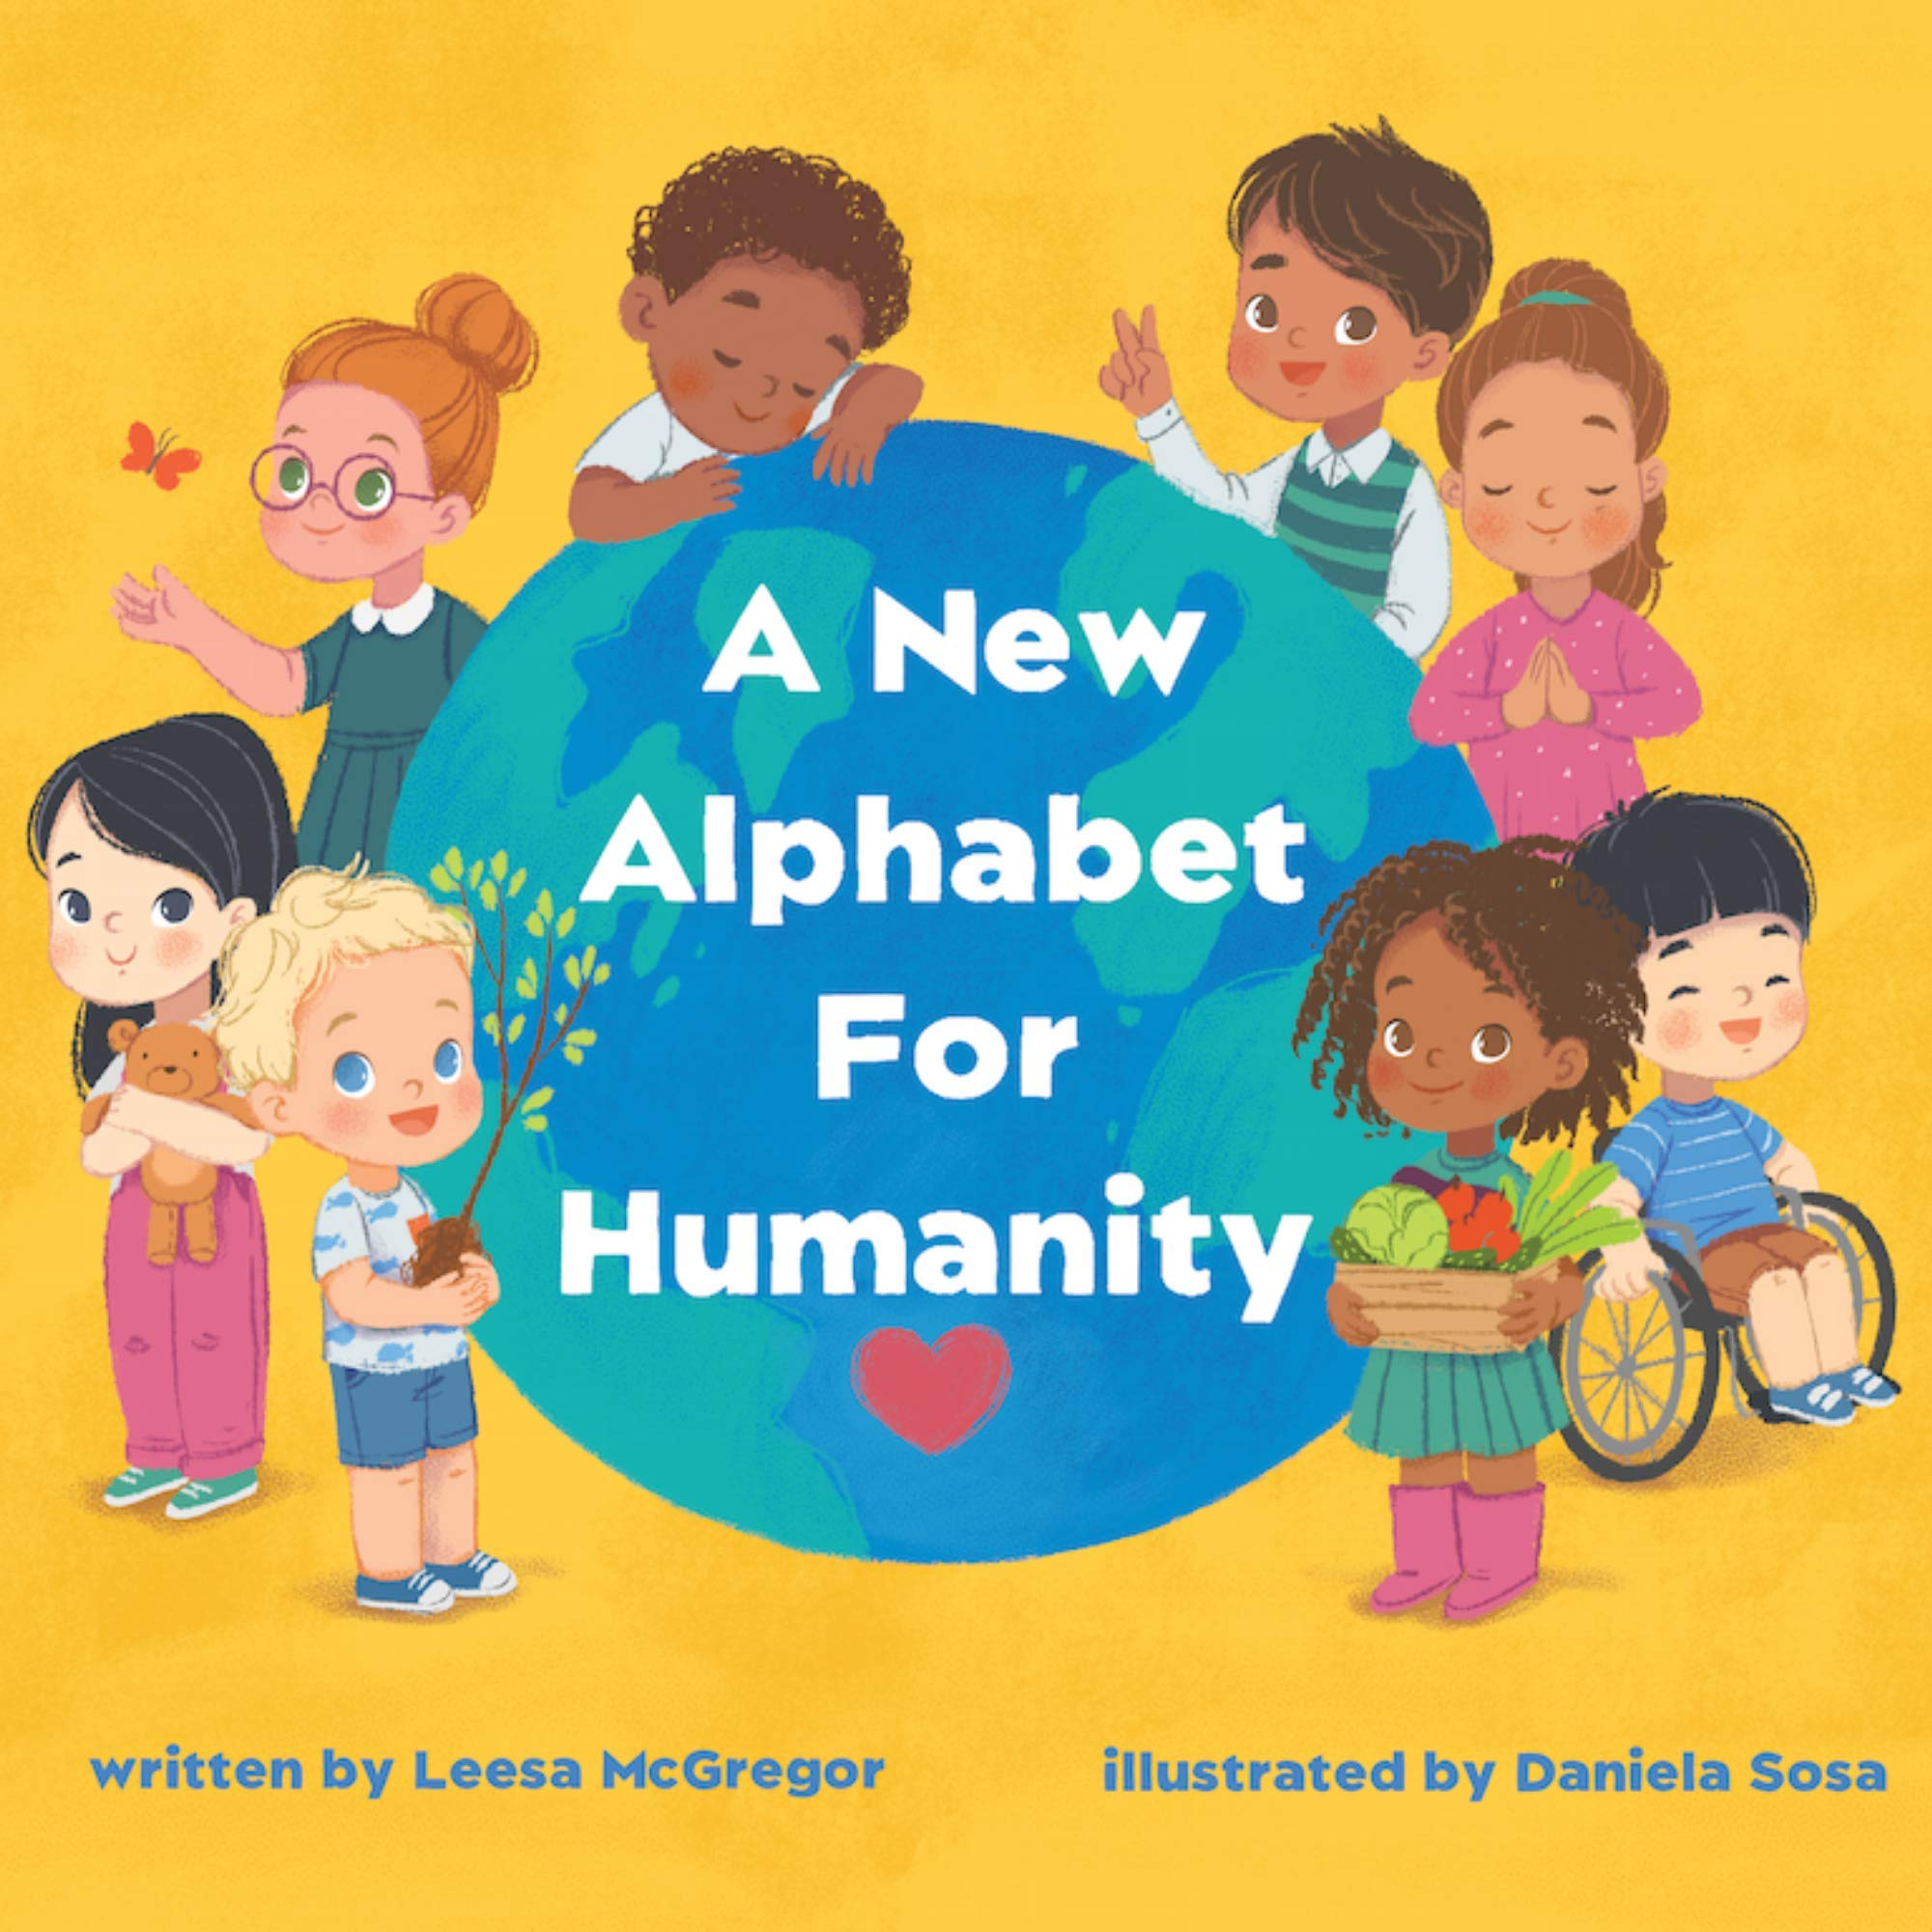 A New Alphabet for Humanity – A Children's Book of Alphabet Words to Inspire Compassion, Kindness and Positivity